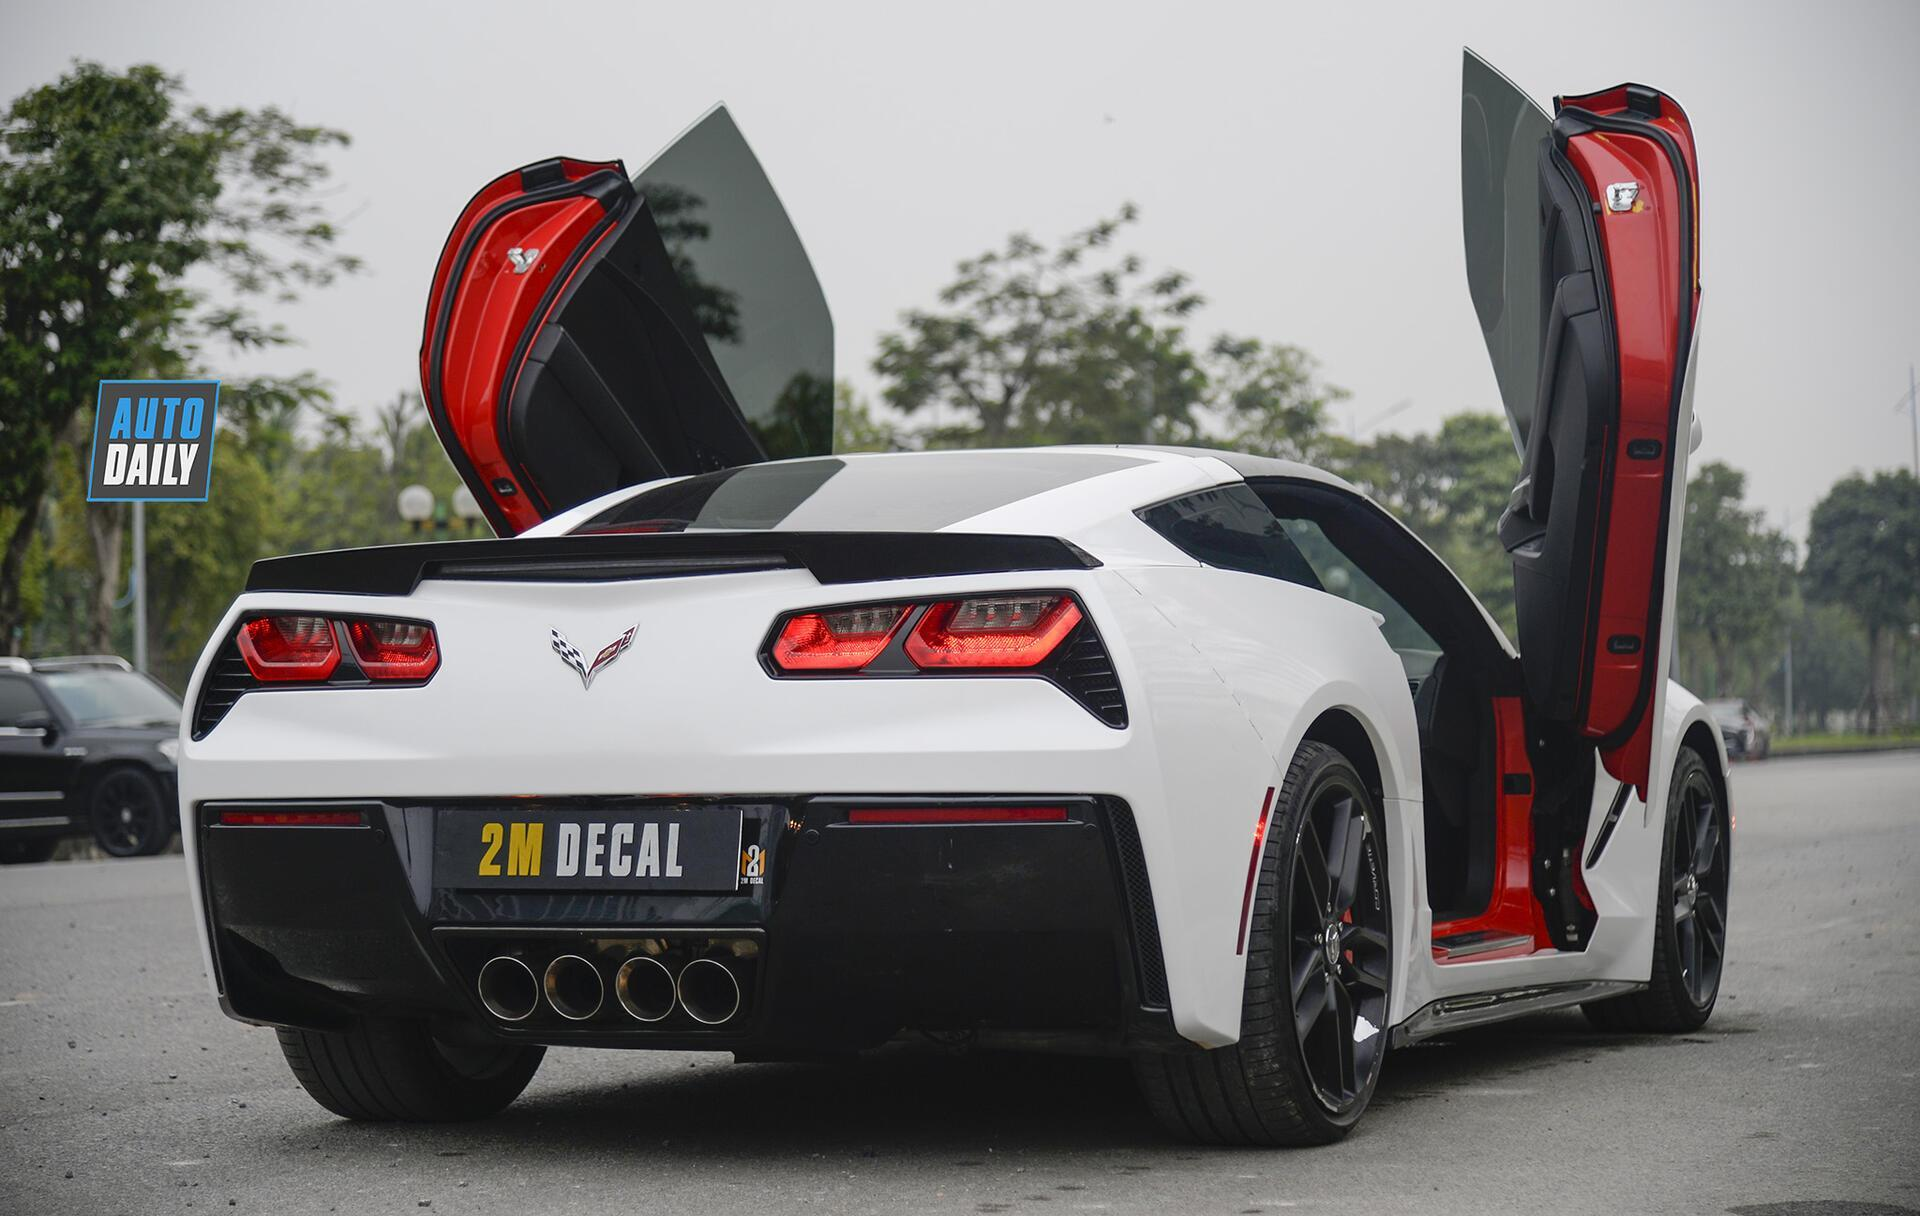 chevrolet-corvette-c7-stingray-do-cua-cat-keo-an-tuong-tai-ha-noi